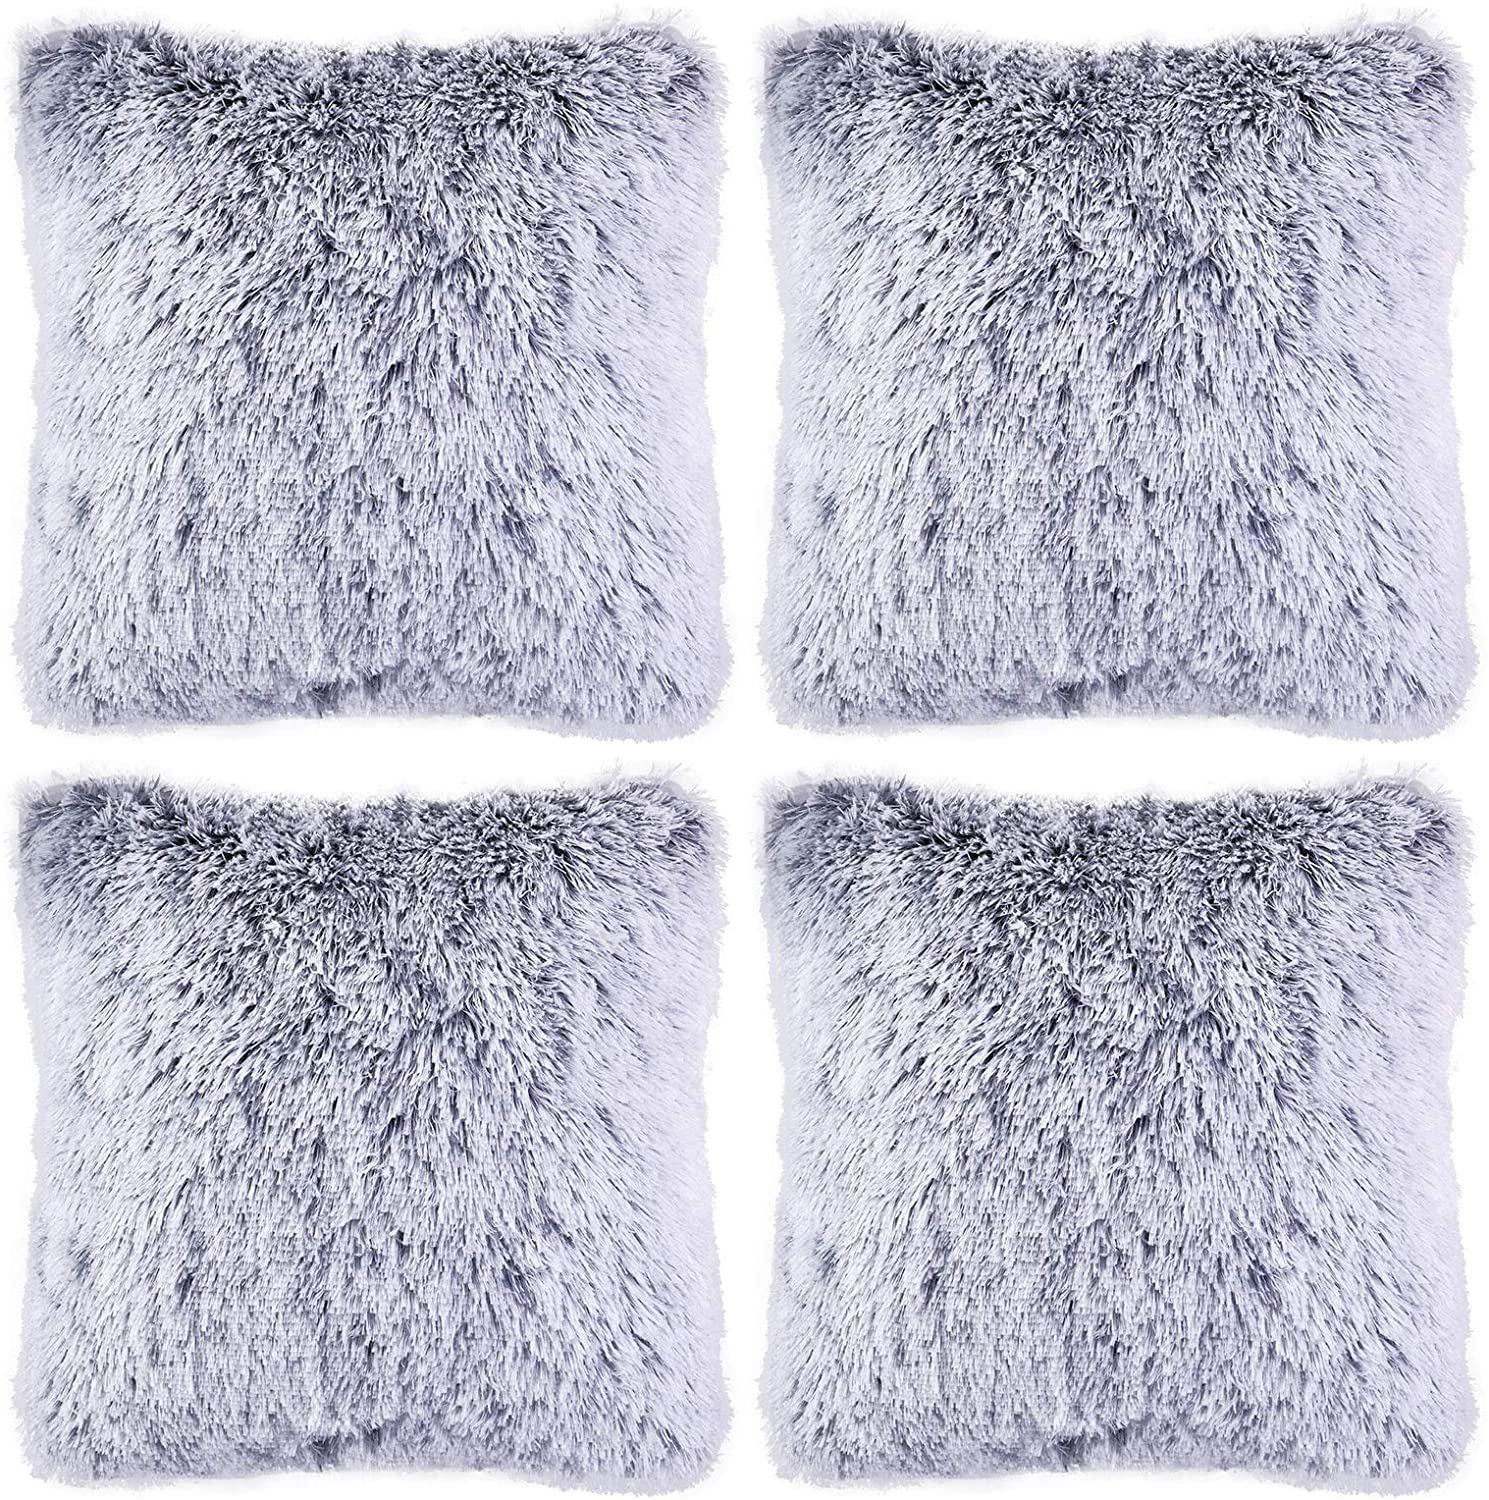 Aneco Pack of 4 18 x 18 Inches Faux Fur Throw Pillow Covers Decorative Square Pillow Covers Faux Fur Cushion Covers for Home Decoration, Gray Ombre